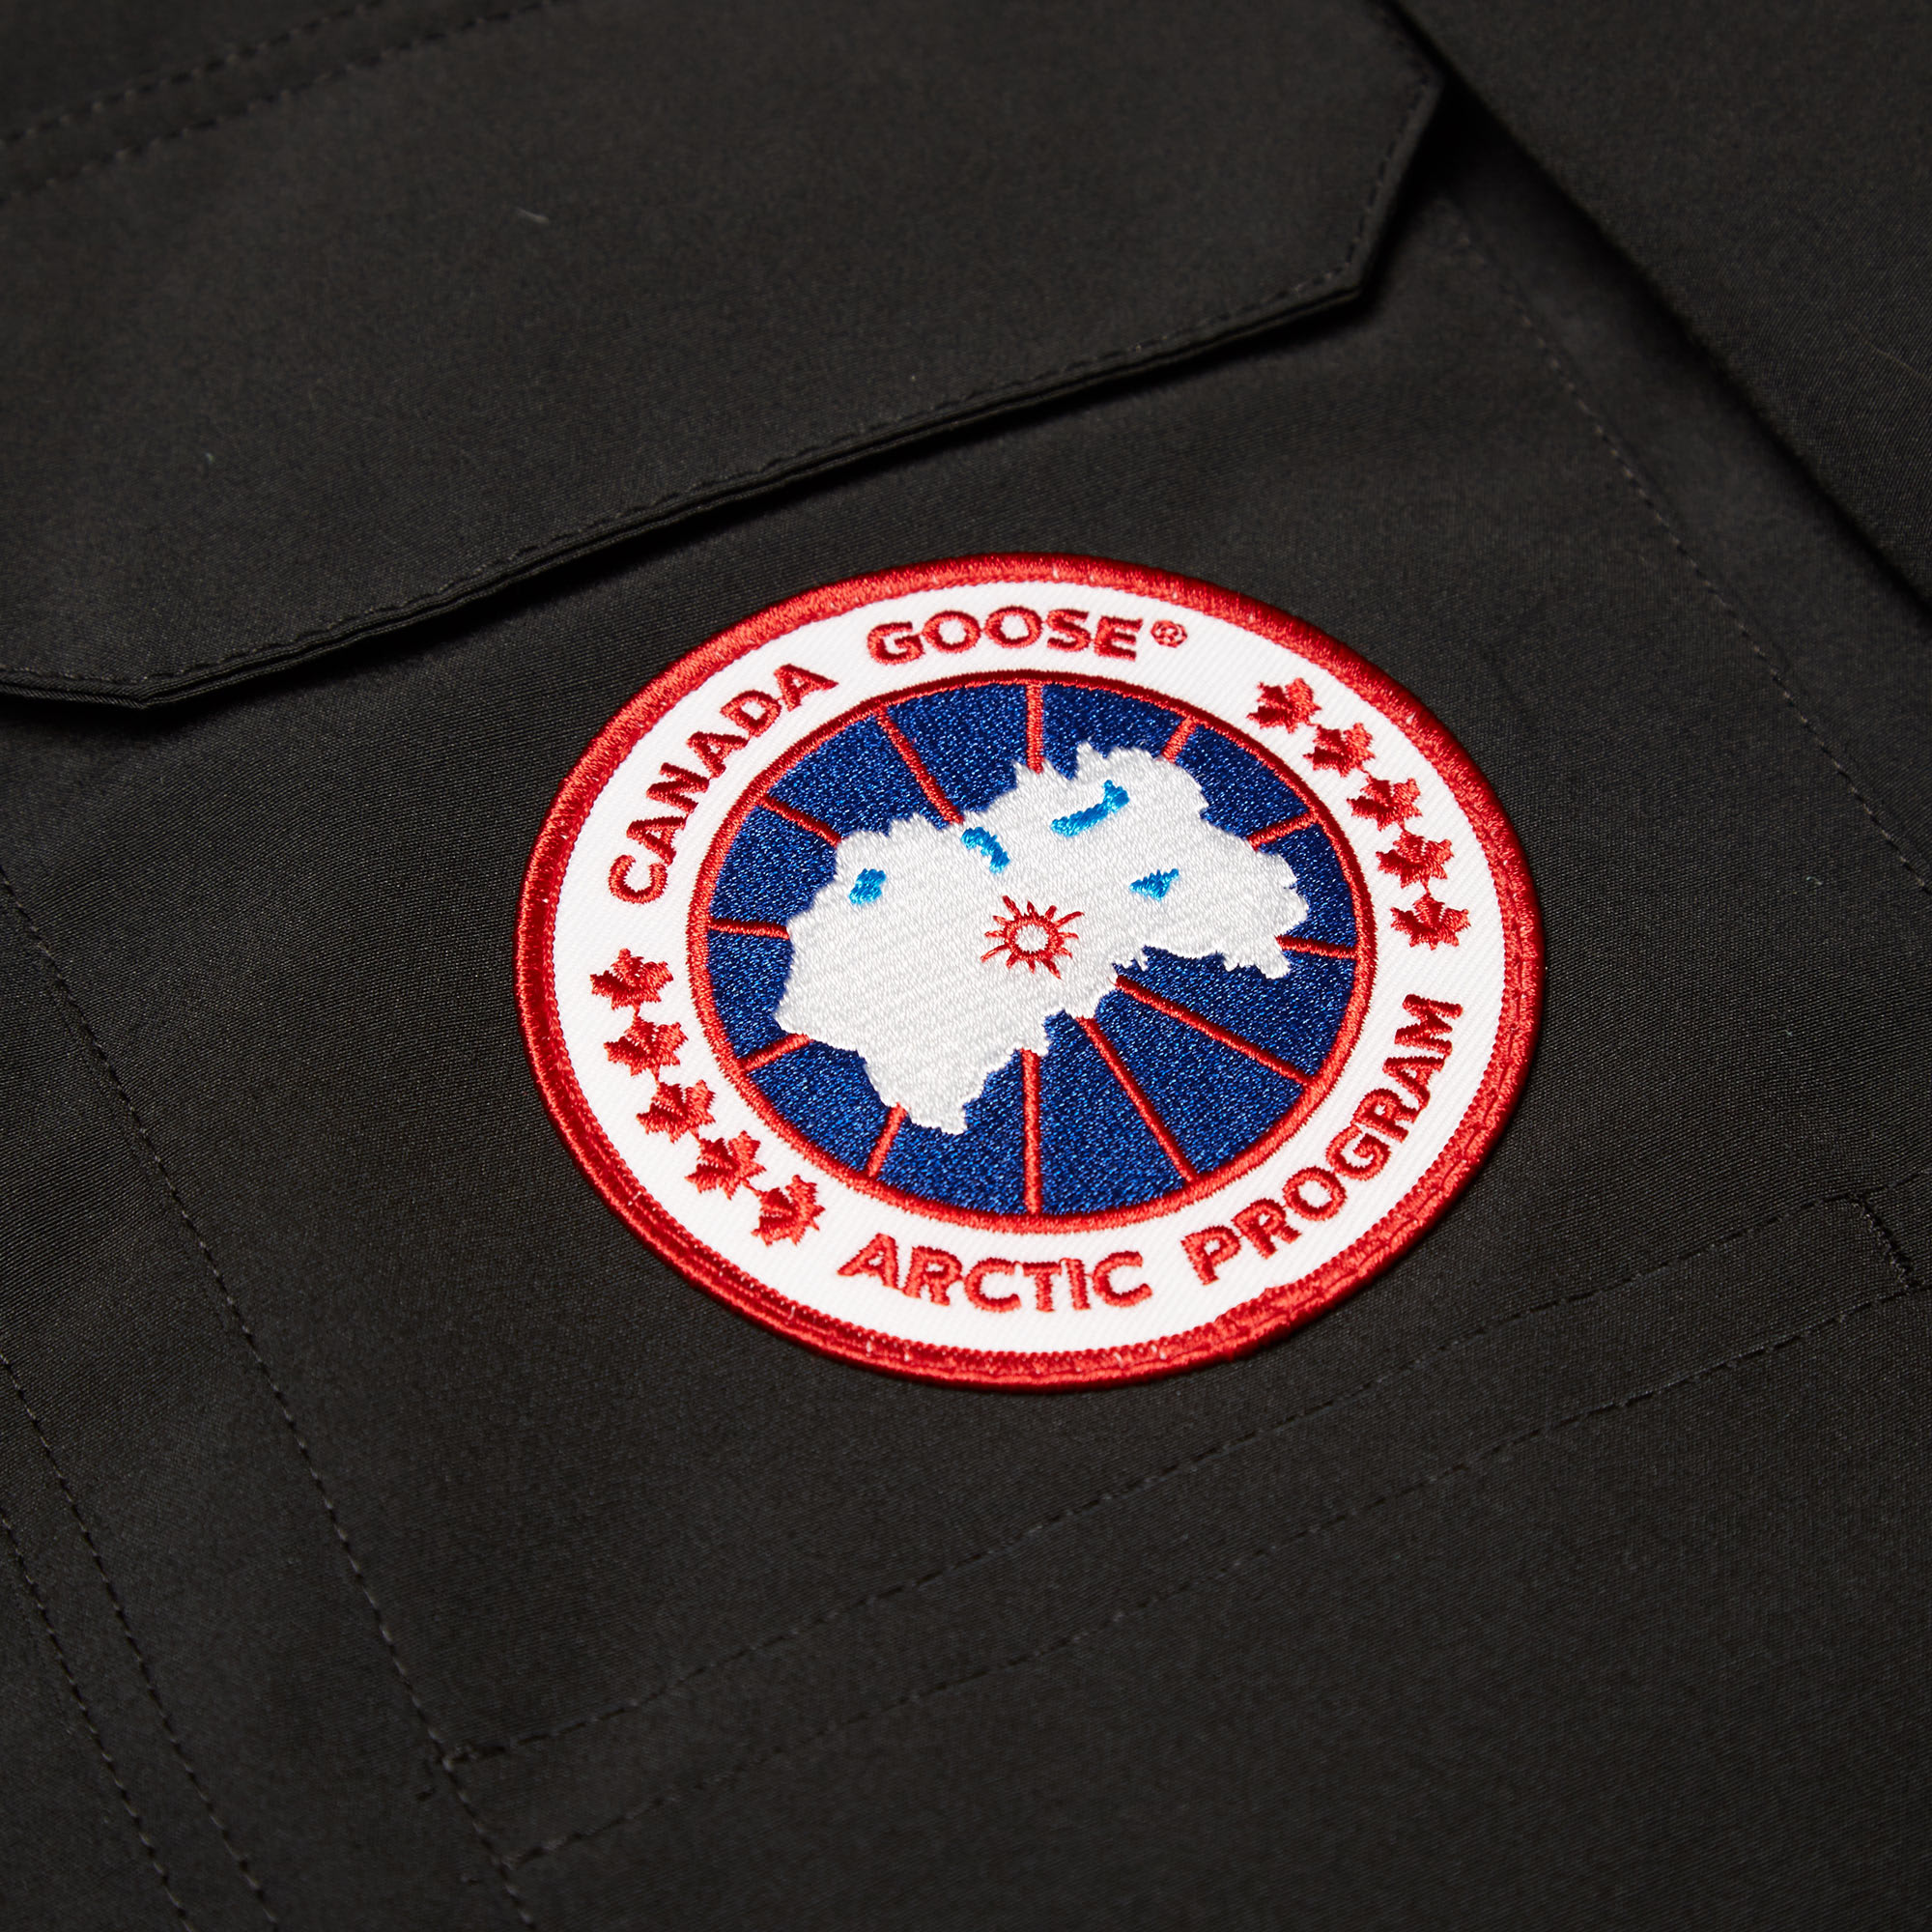 Canada Goose trillium parka outlet 2016 - Save Up To 50% Off Fake Canada Goose Price Outlet Store